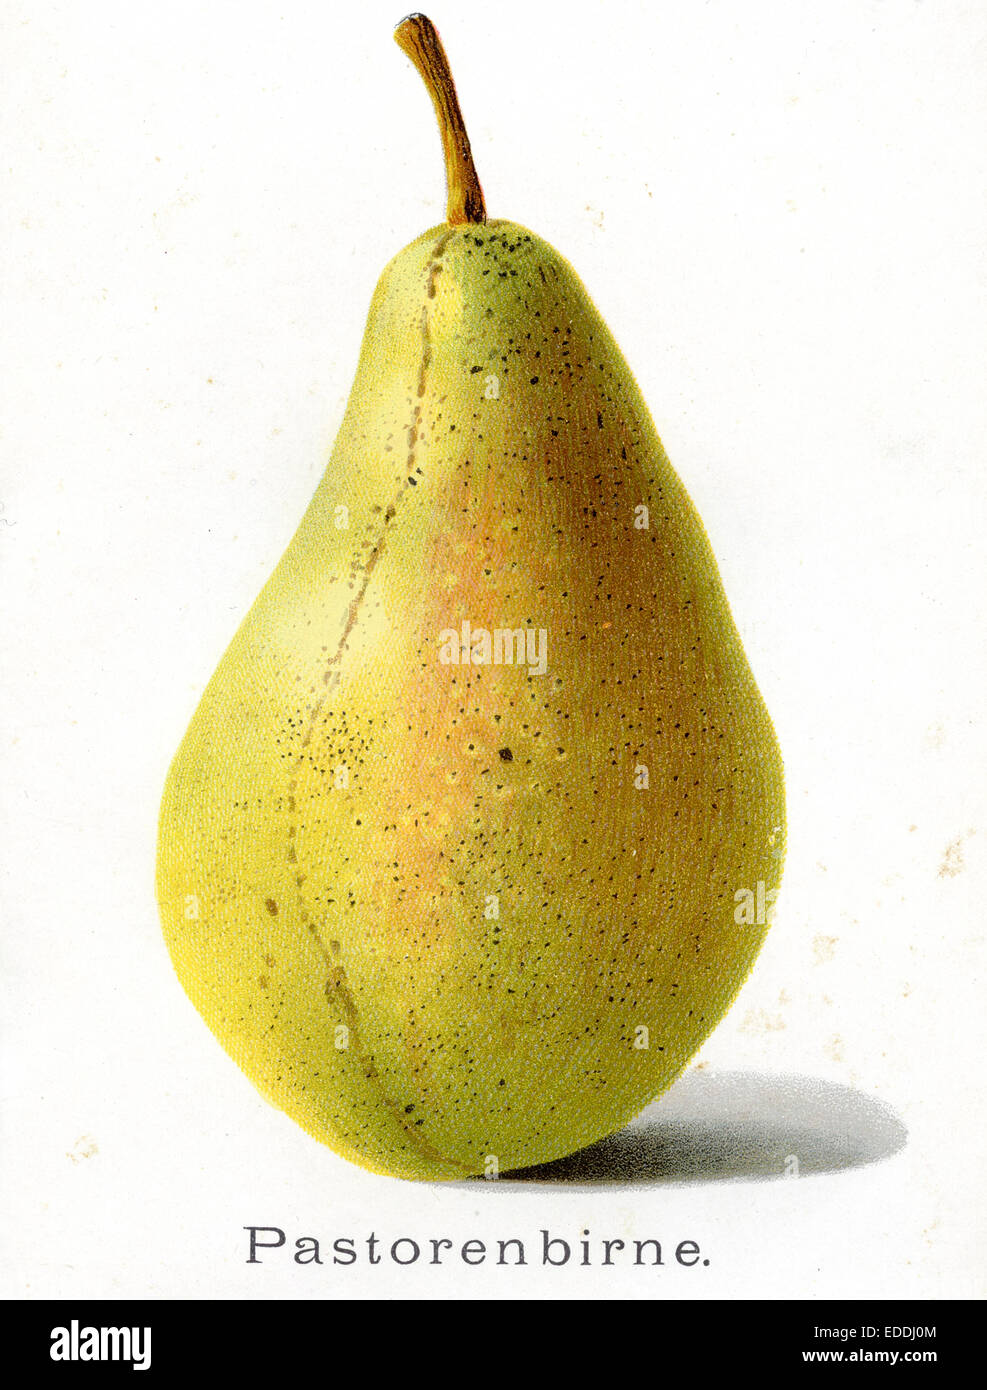 Pear, Pear: Pastor's pear - Stock Image